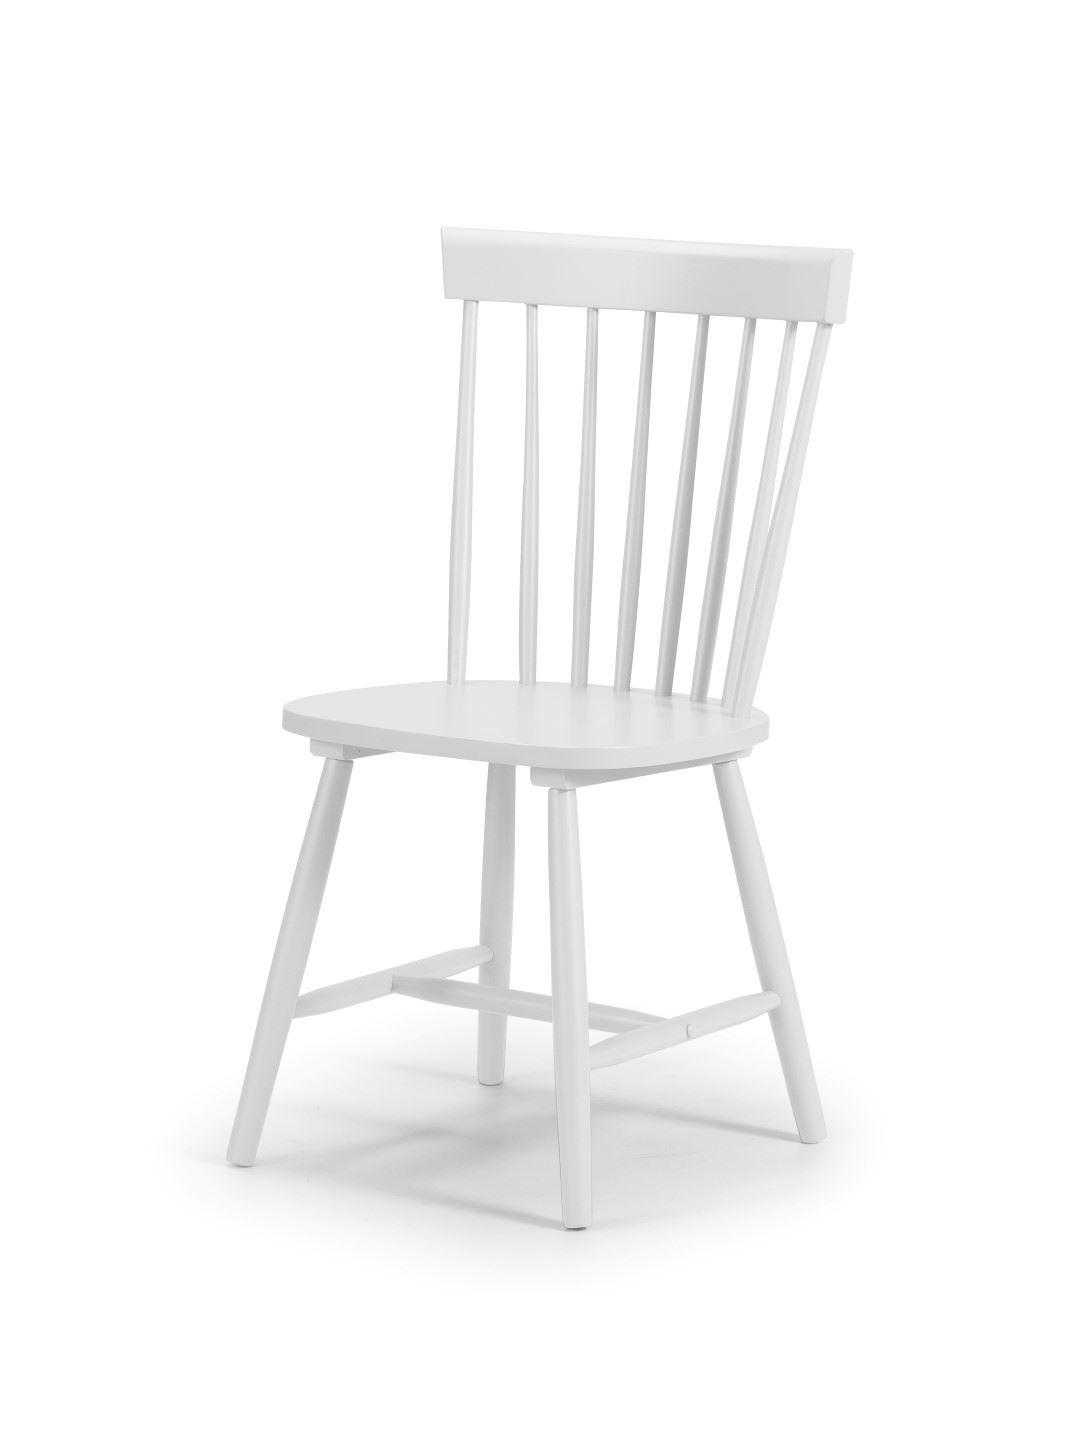 Julian Bowen Torino White Kitchen Dining Chair x 4 Solid Wood Traditional Style